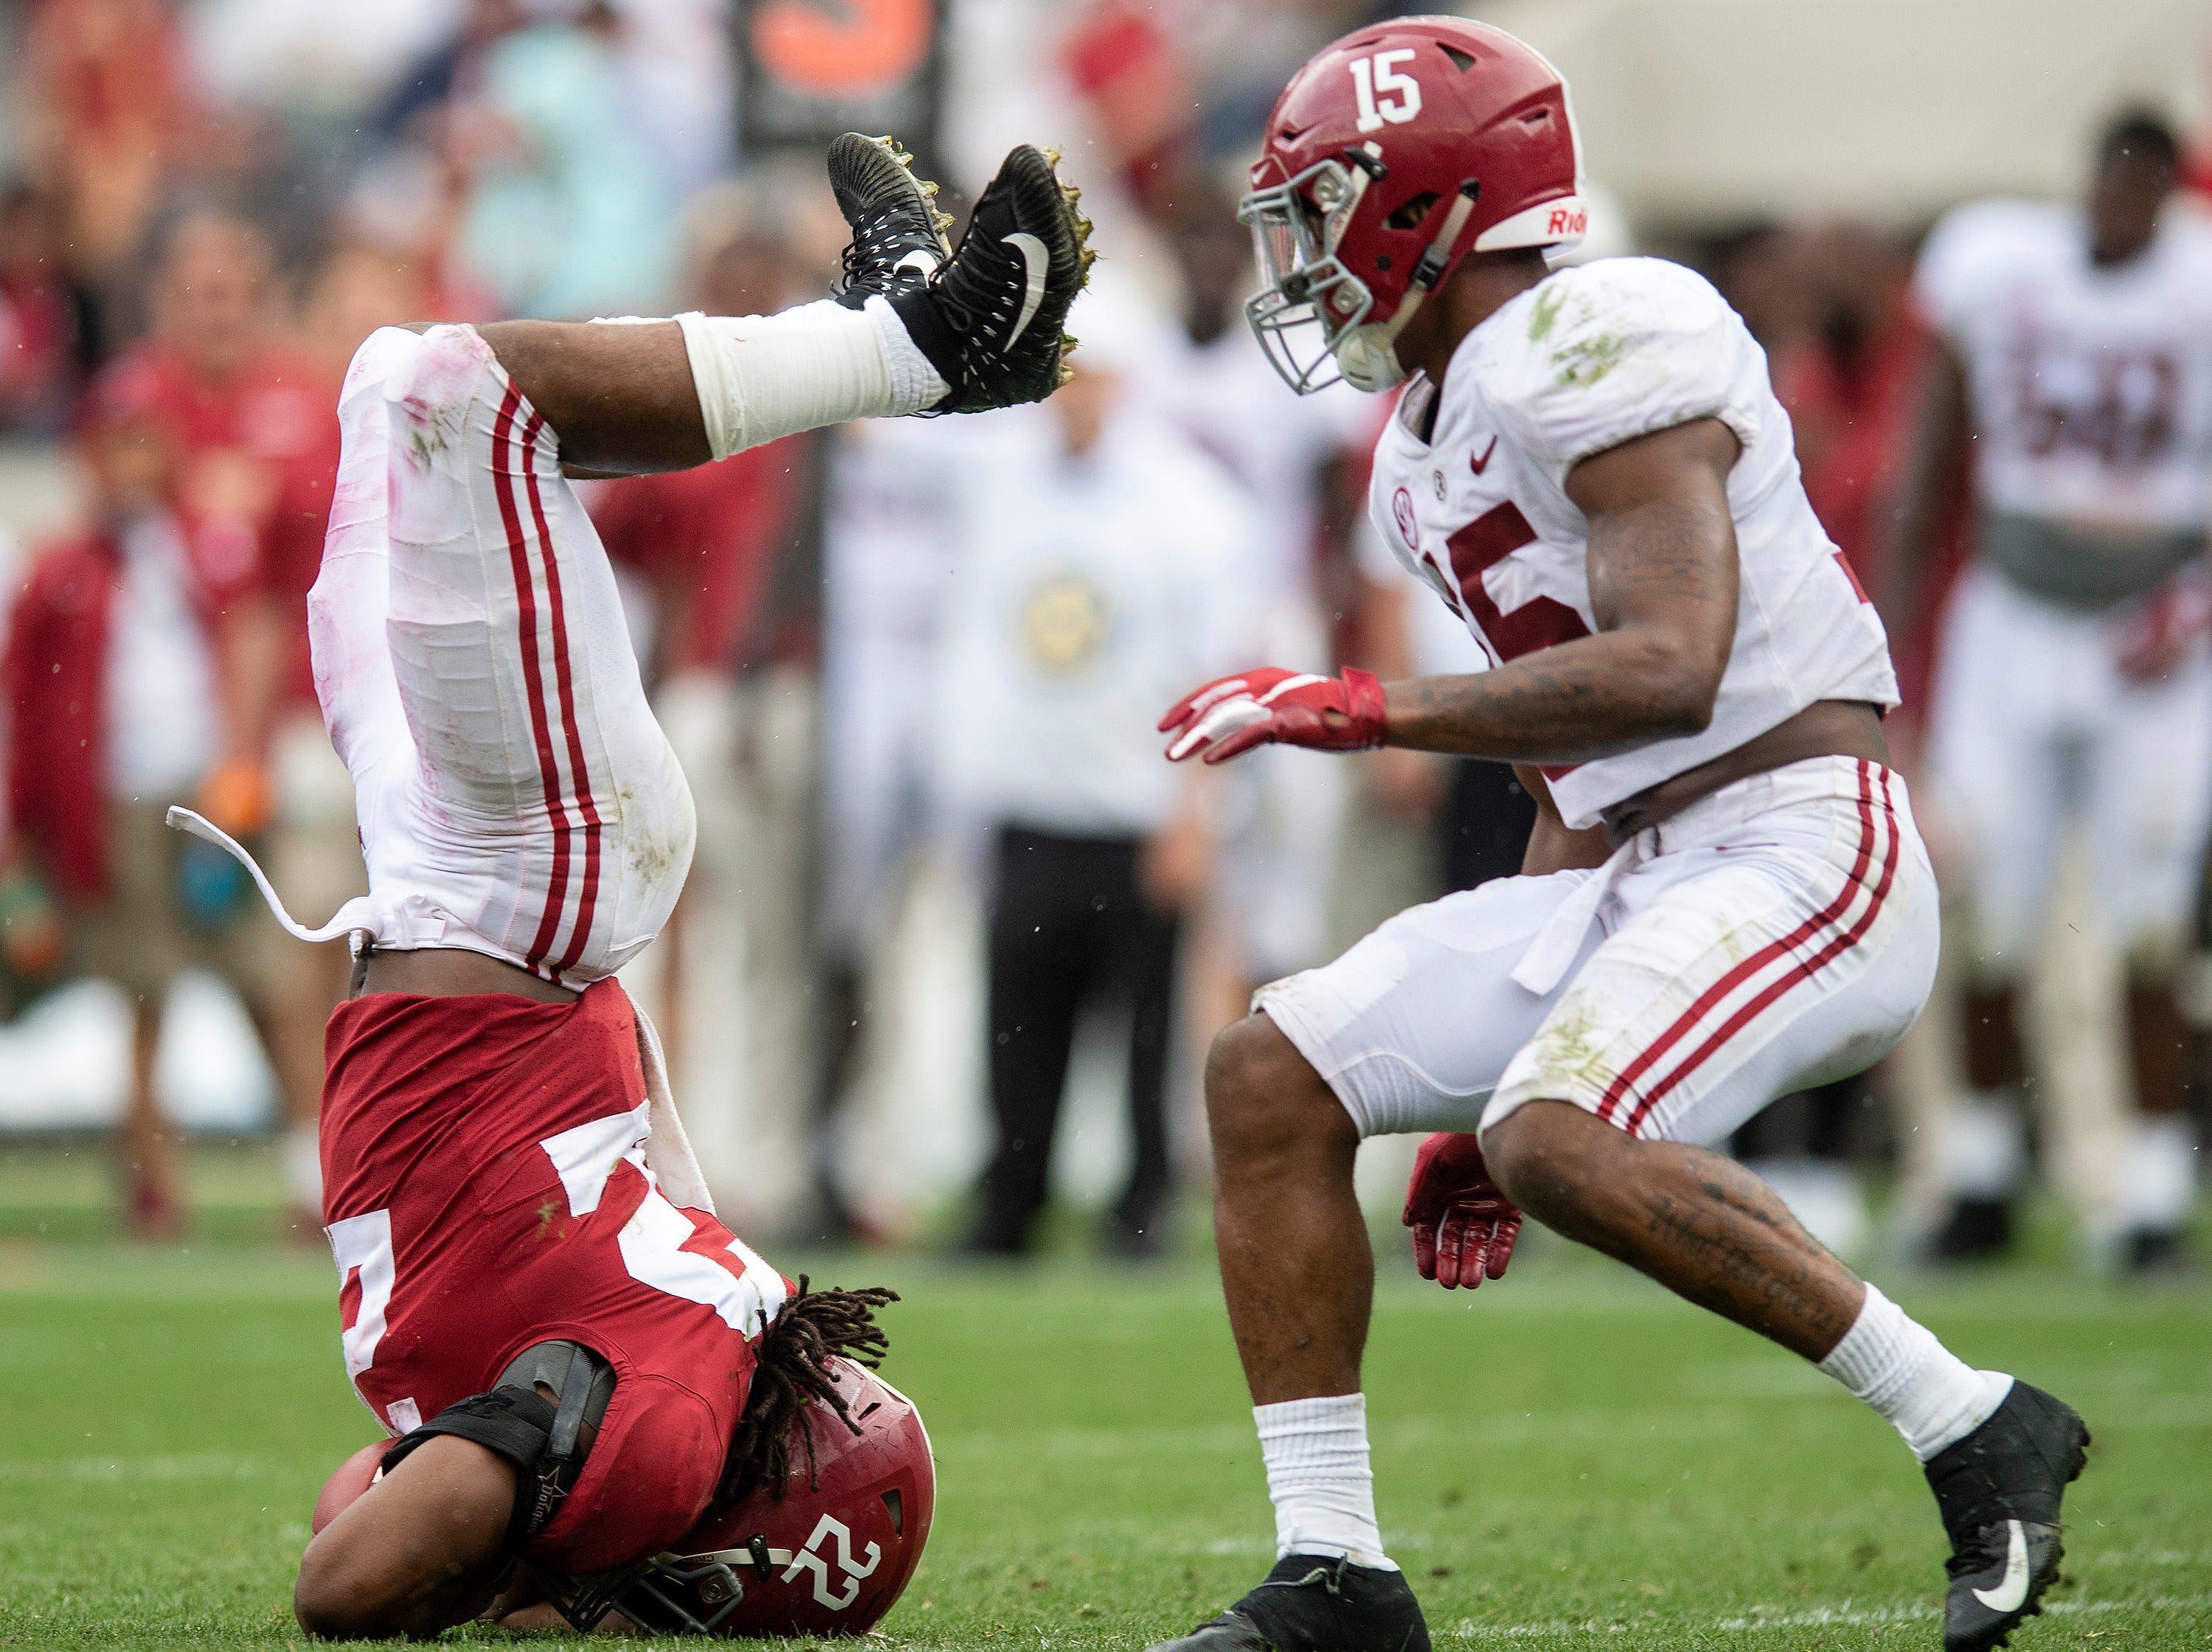 Alabama running back Najee Harris (22) face plants after being upended during second half action in the Alabama A-Day spring football scrimmage game at Bryant Denny Stadium in Tuscaloosa, Ala., on Saturday April 13, 2019.